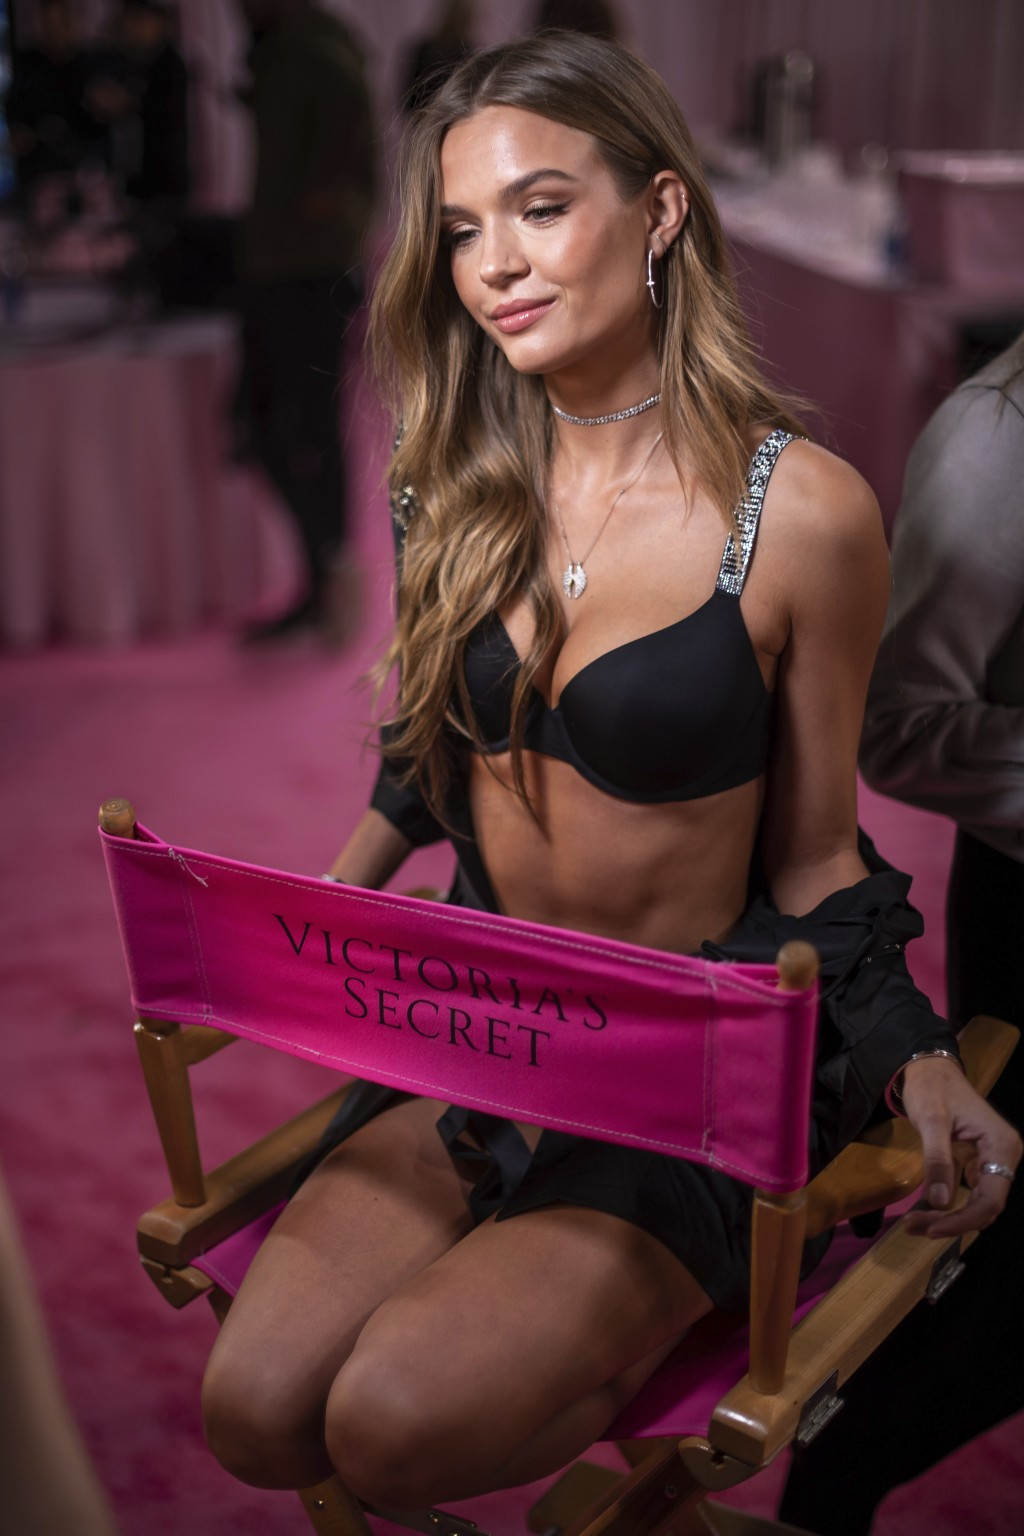 Josephine Skriver appears backstage during hair and makeup at the 2018 Victoria's Secret Fashion Show at Pier 94 on Thursday, Nov. 8, 2018, in New Yor